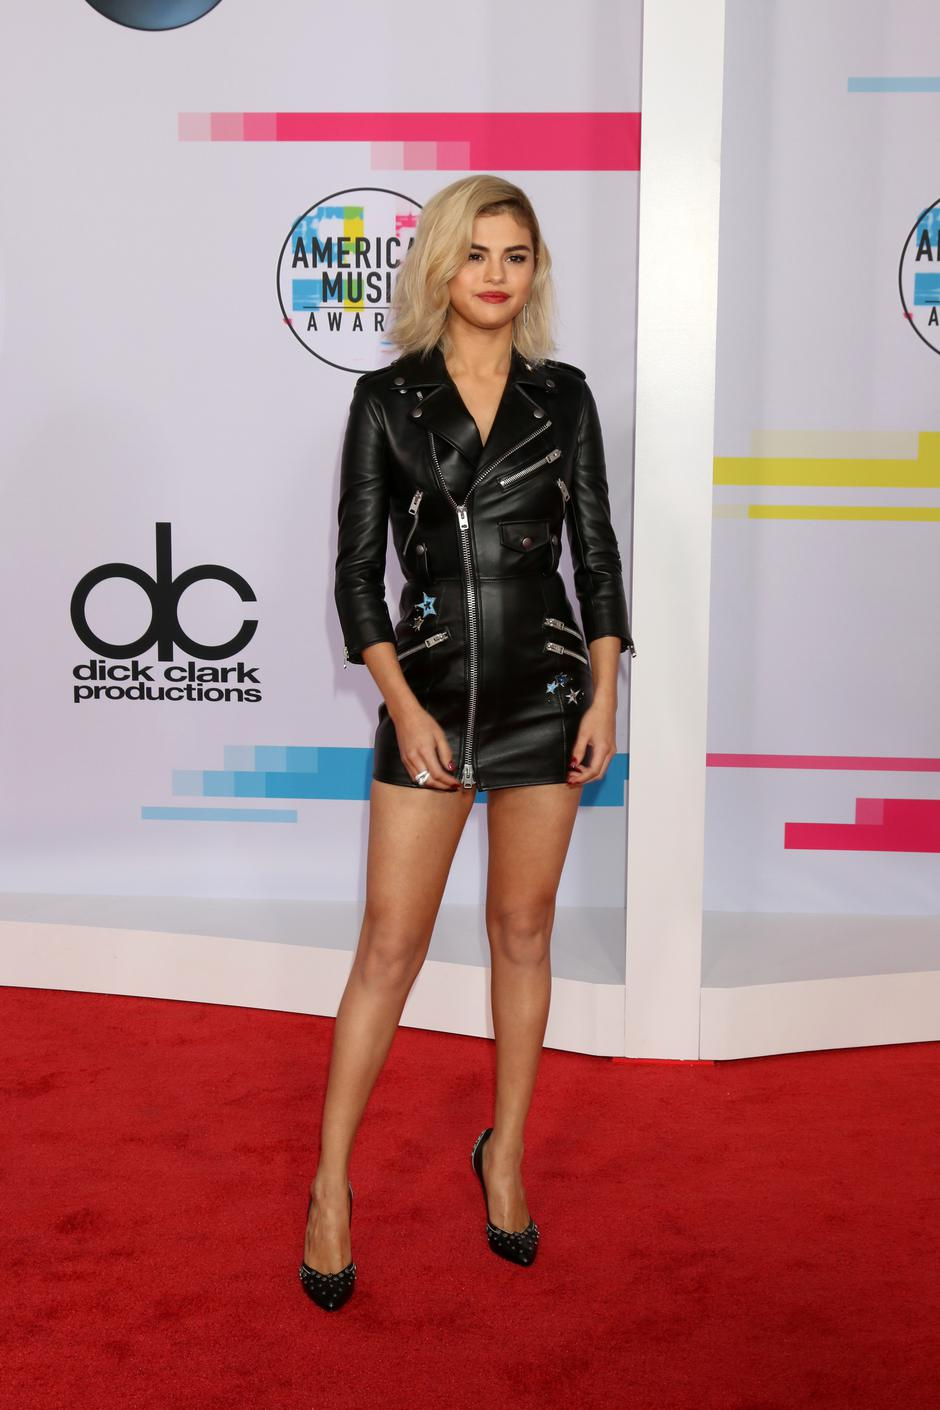 USA - American Music Awards 2017 - Los Angeles | Autor: Kathy Hutchins/IPA/PIXSELL/IPA/PIXSELL